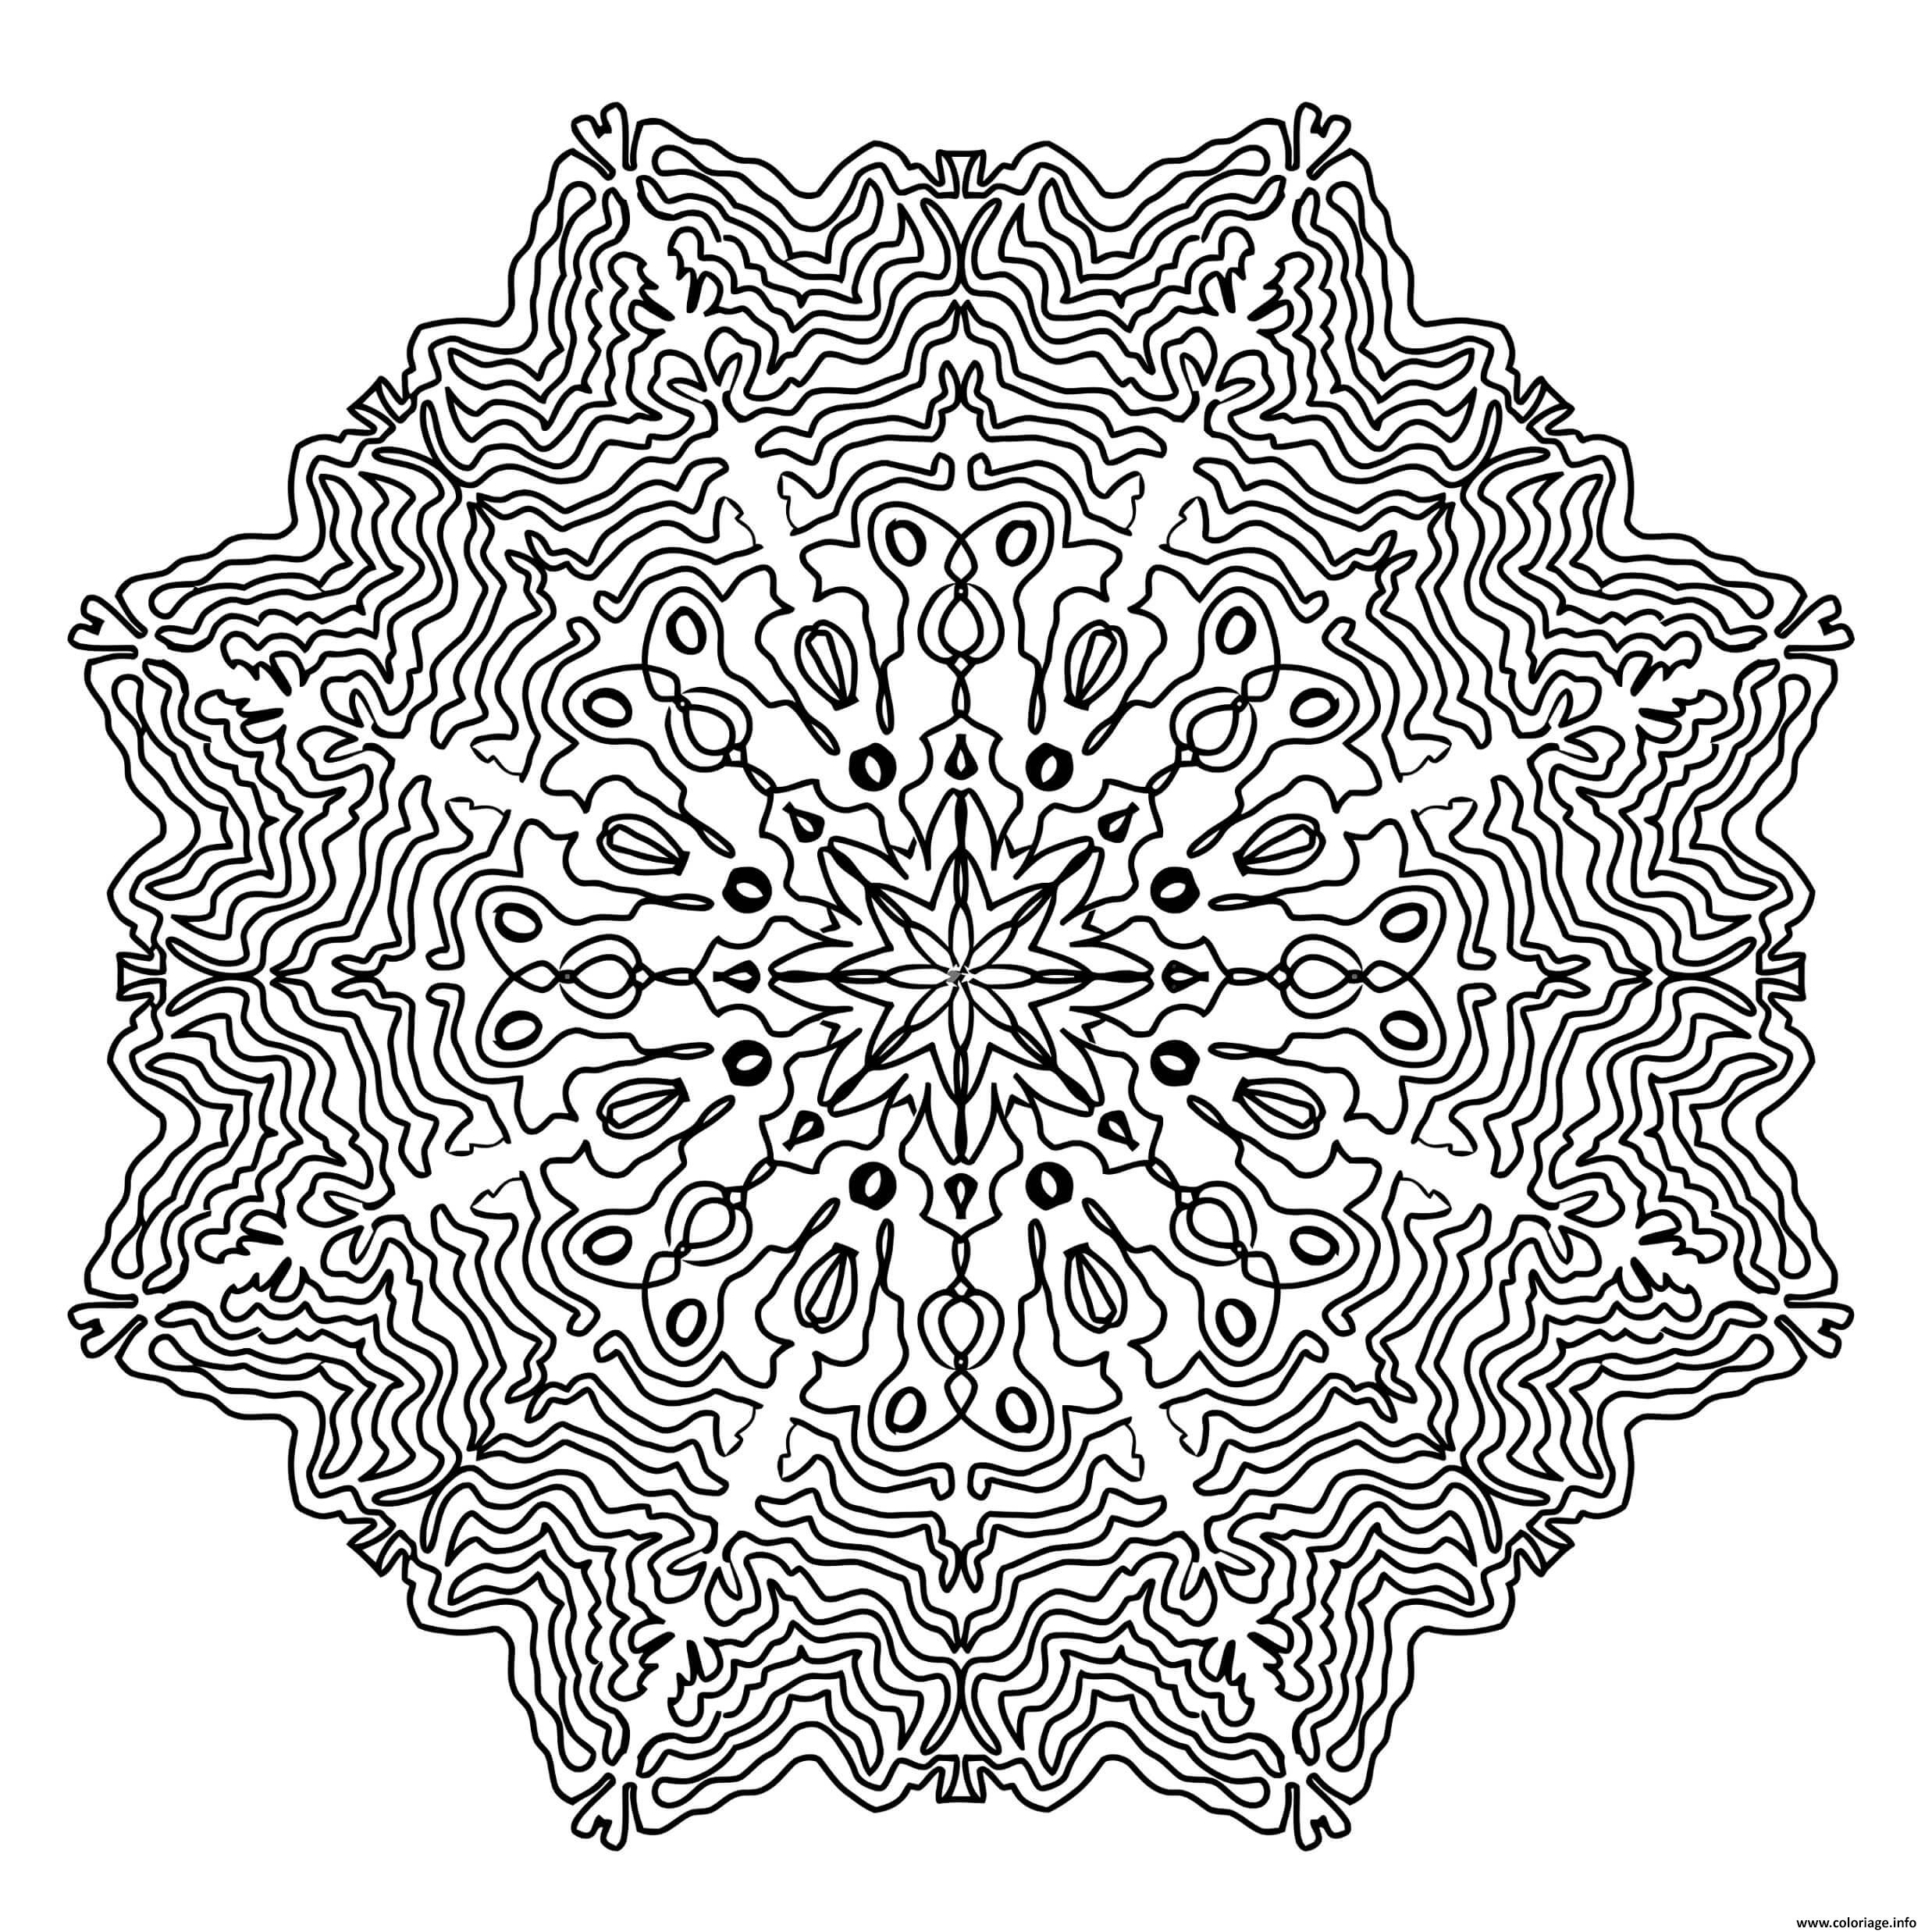 Coloriage mandala adulte antistress dessin - Image anti stress ...